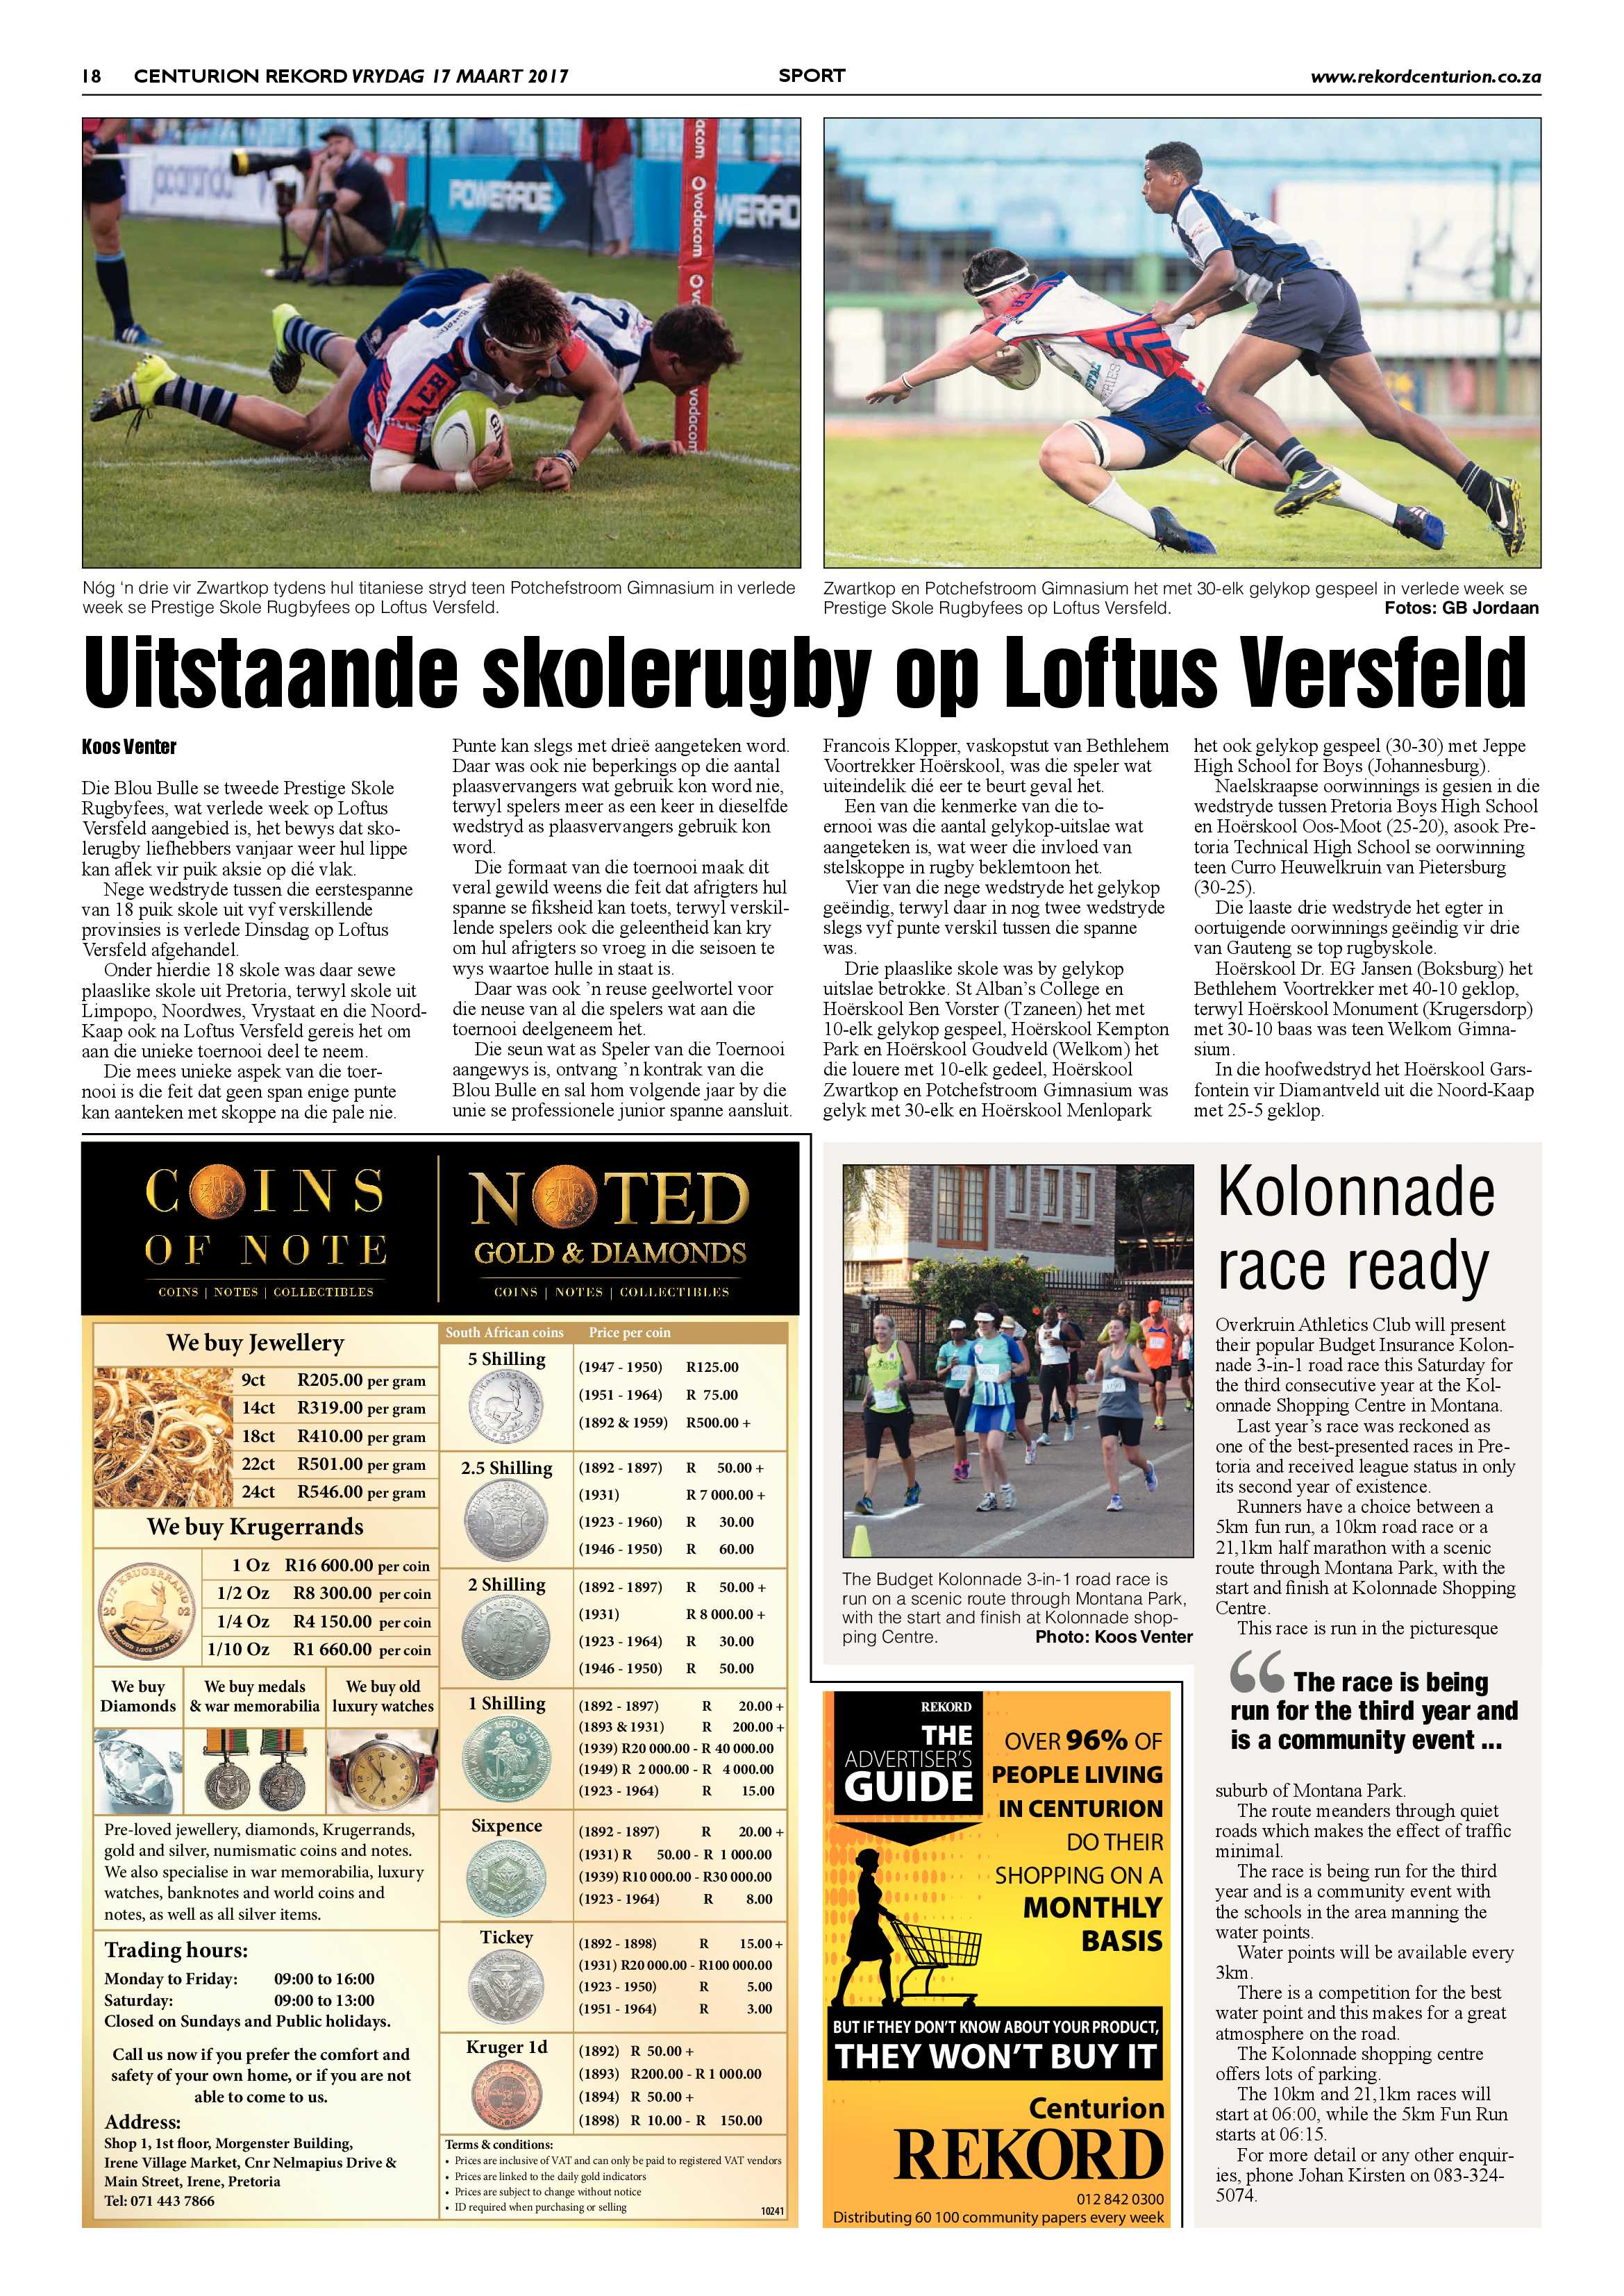 rekord-centurion-17-march-2017-epapers-page-18